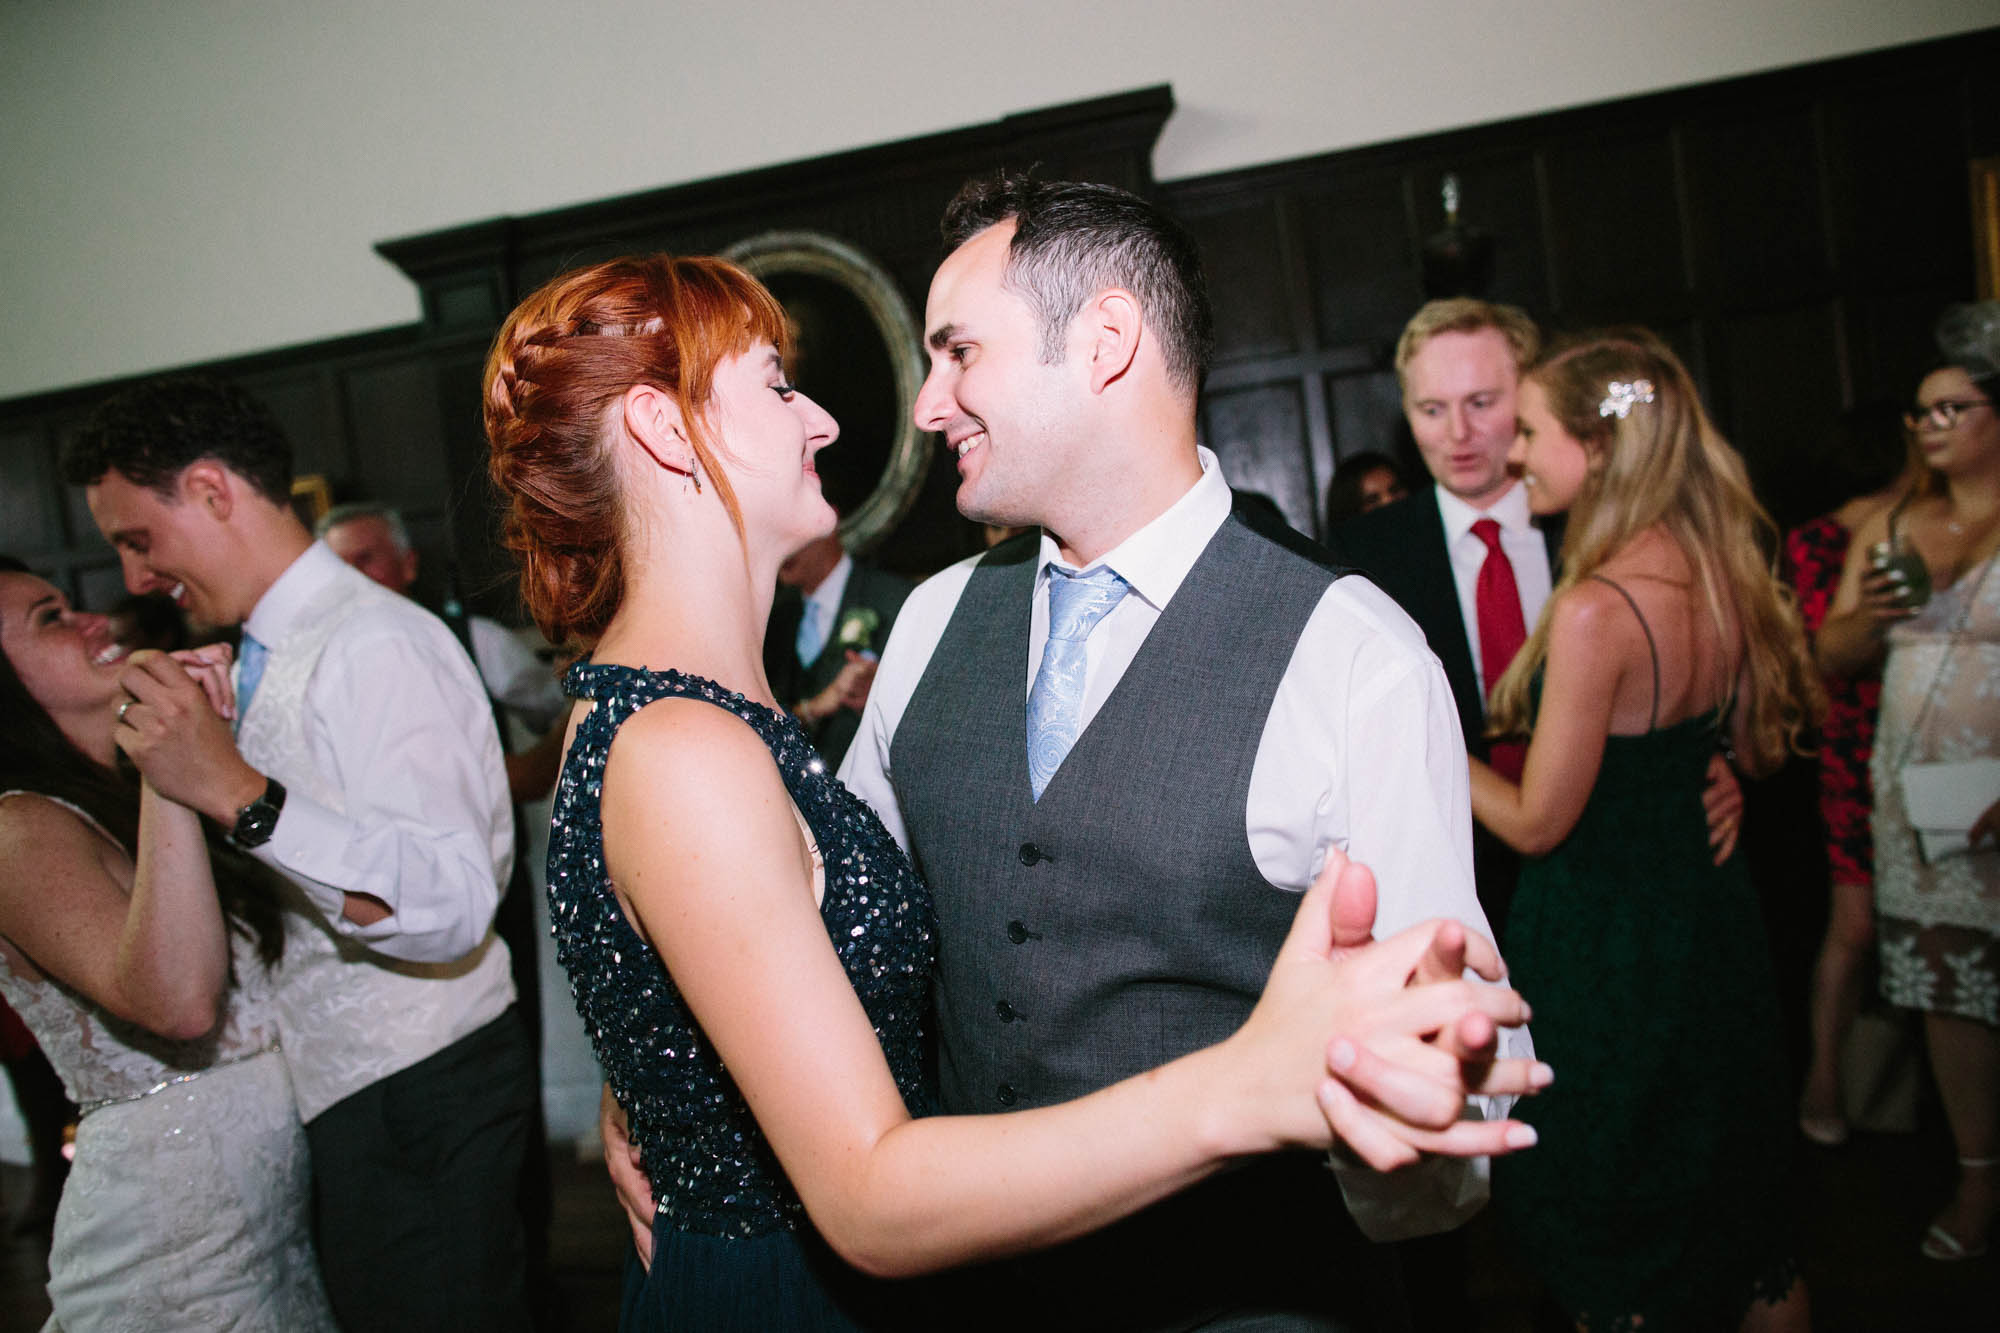 Guests smiling and dancing at the party of wedding at Chiddingstone Castle